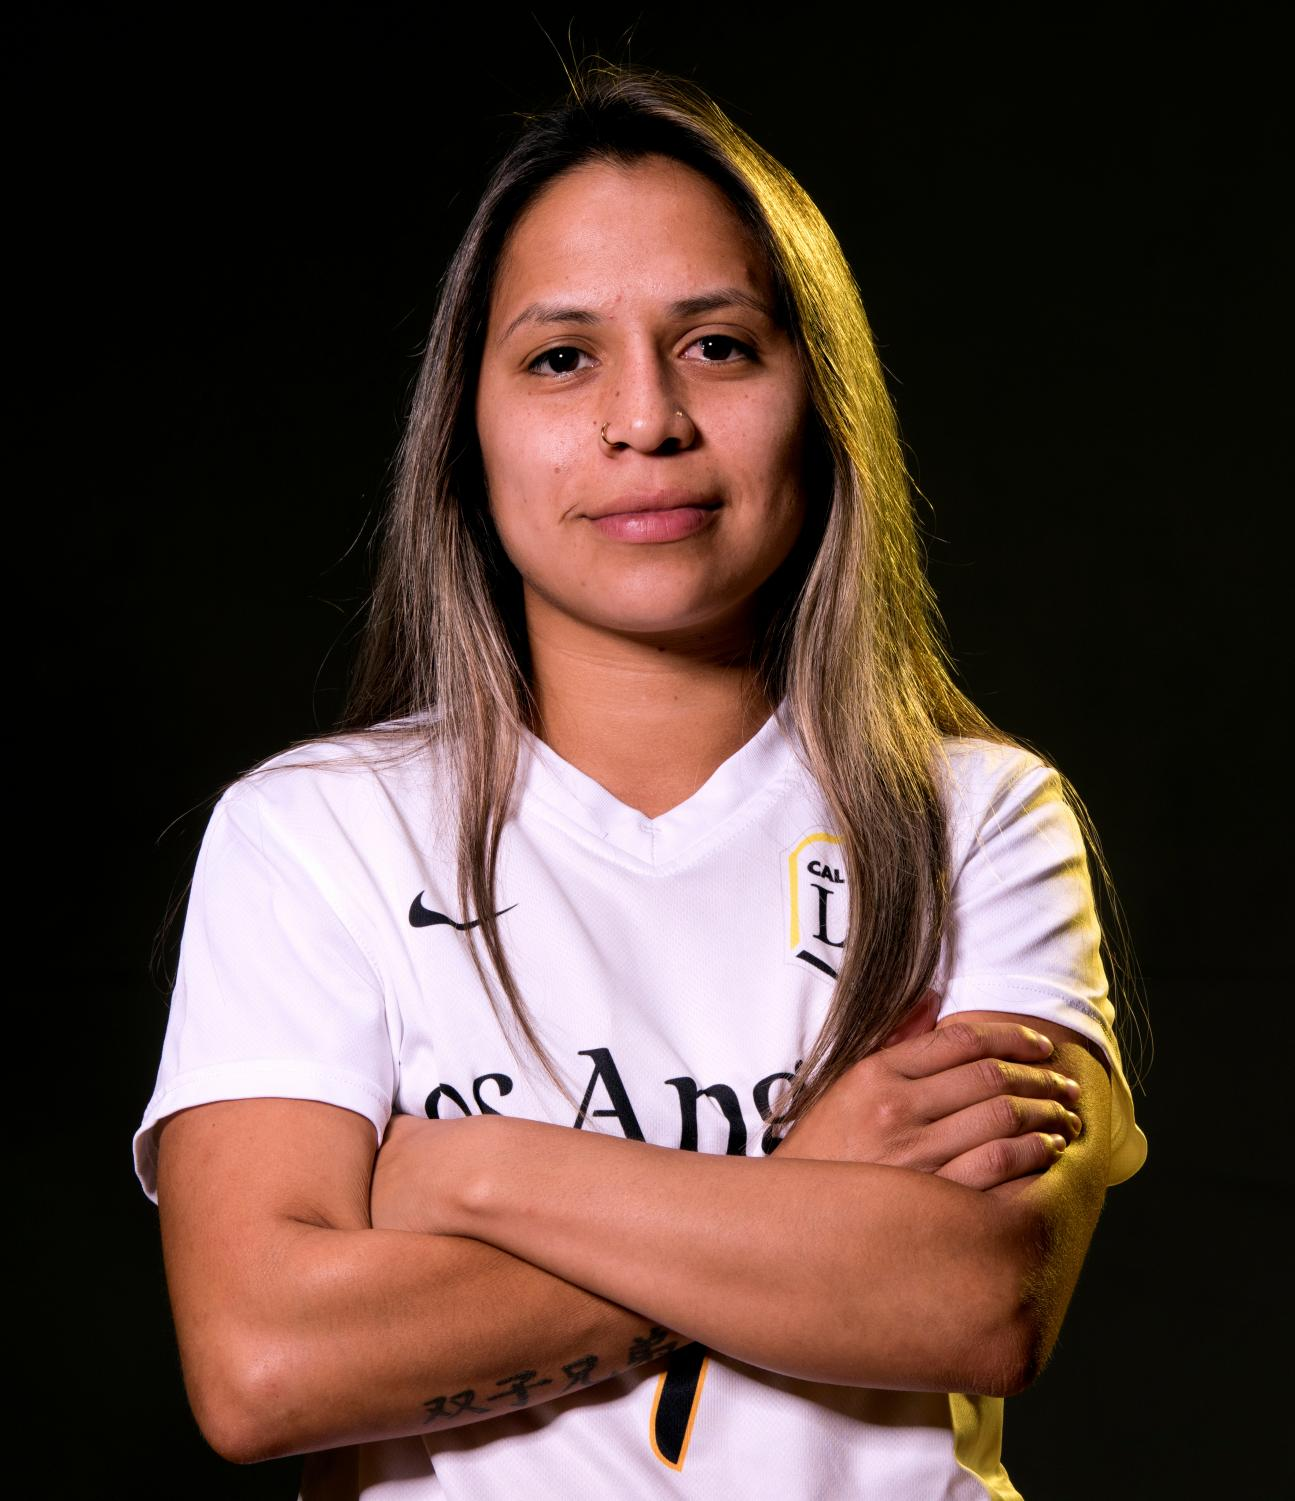 Headshot of Kimberly Surio. Surio has been playing soccer throughout high school and college.